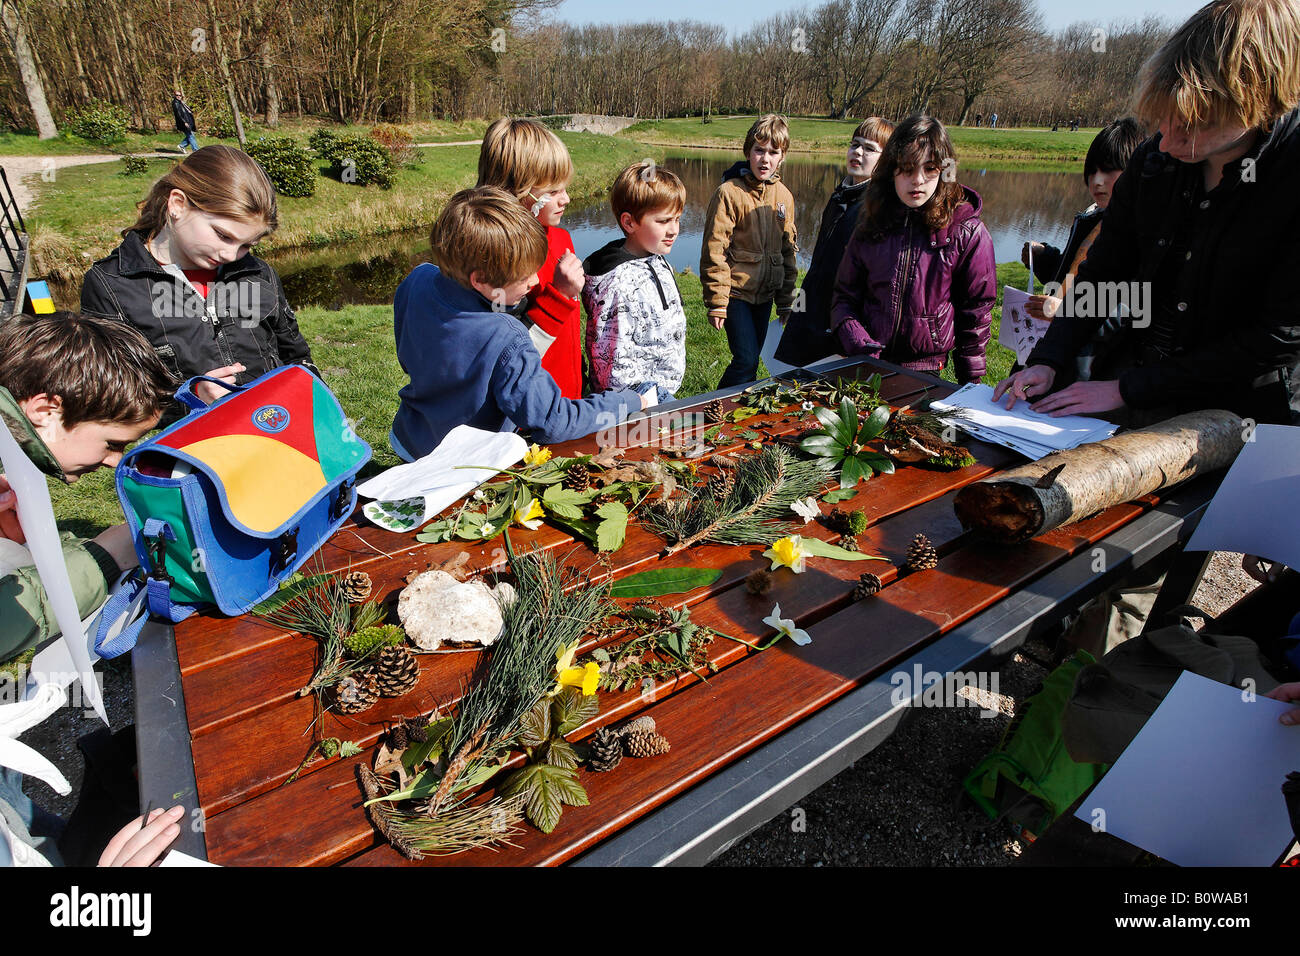 Children studying natural history during a class field trip, table covered in leaves, twigs and fruit collected - Stock Image